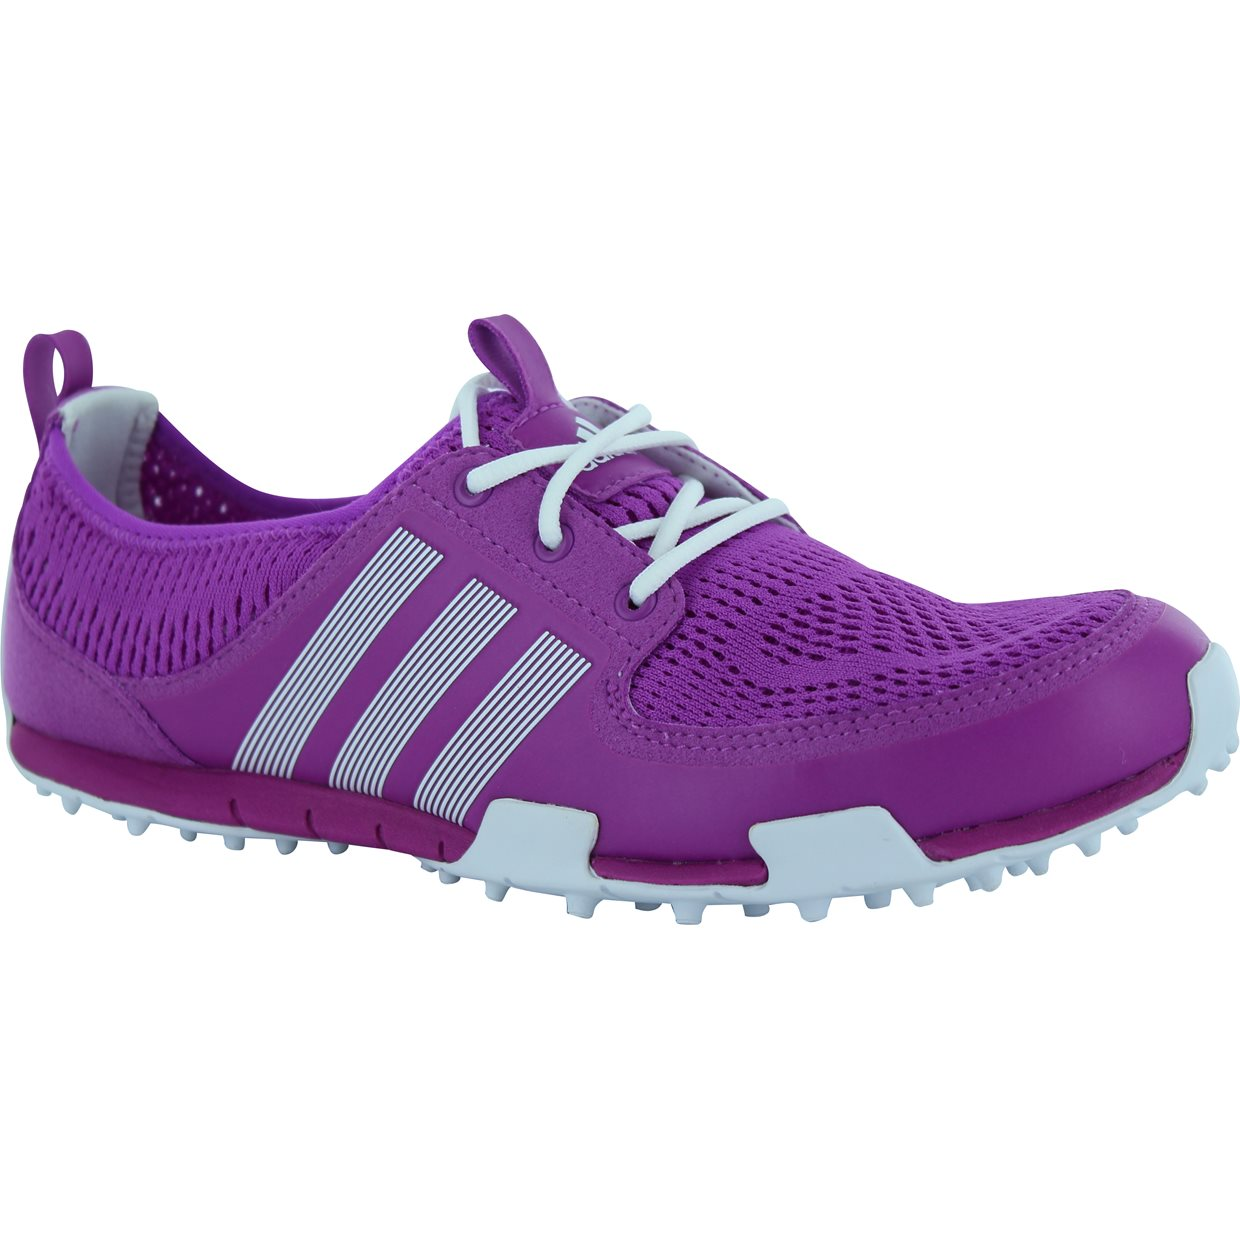 adidas climacool ballerina ii ladies spikeless shoes at. Black Bedroom Furniture Sets. Home Design Ideas